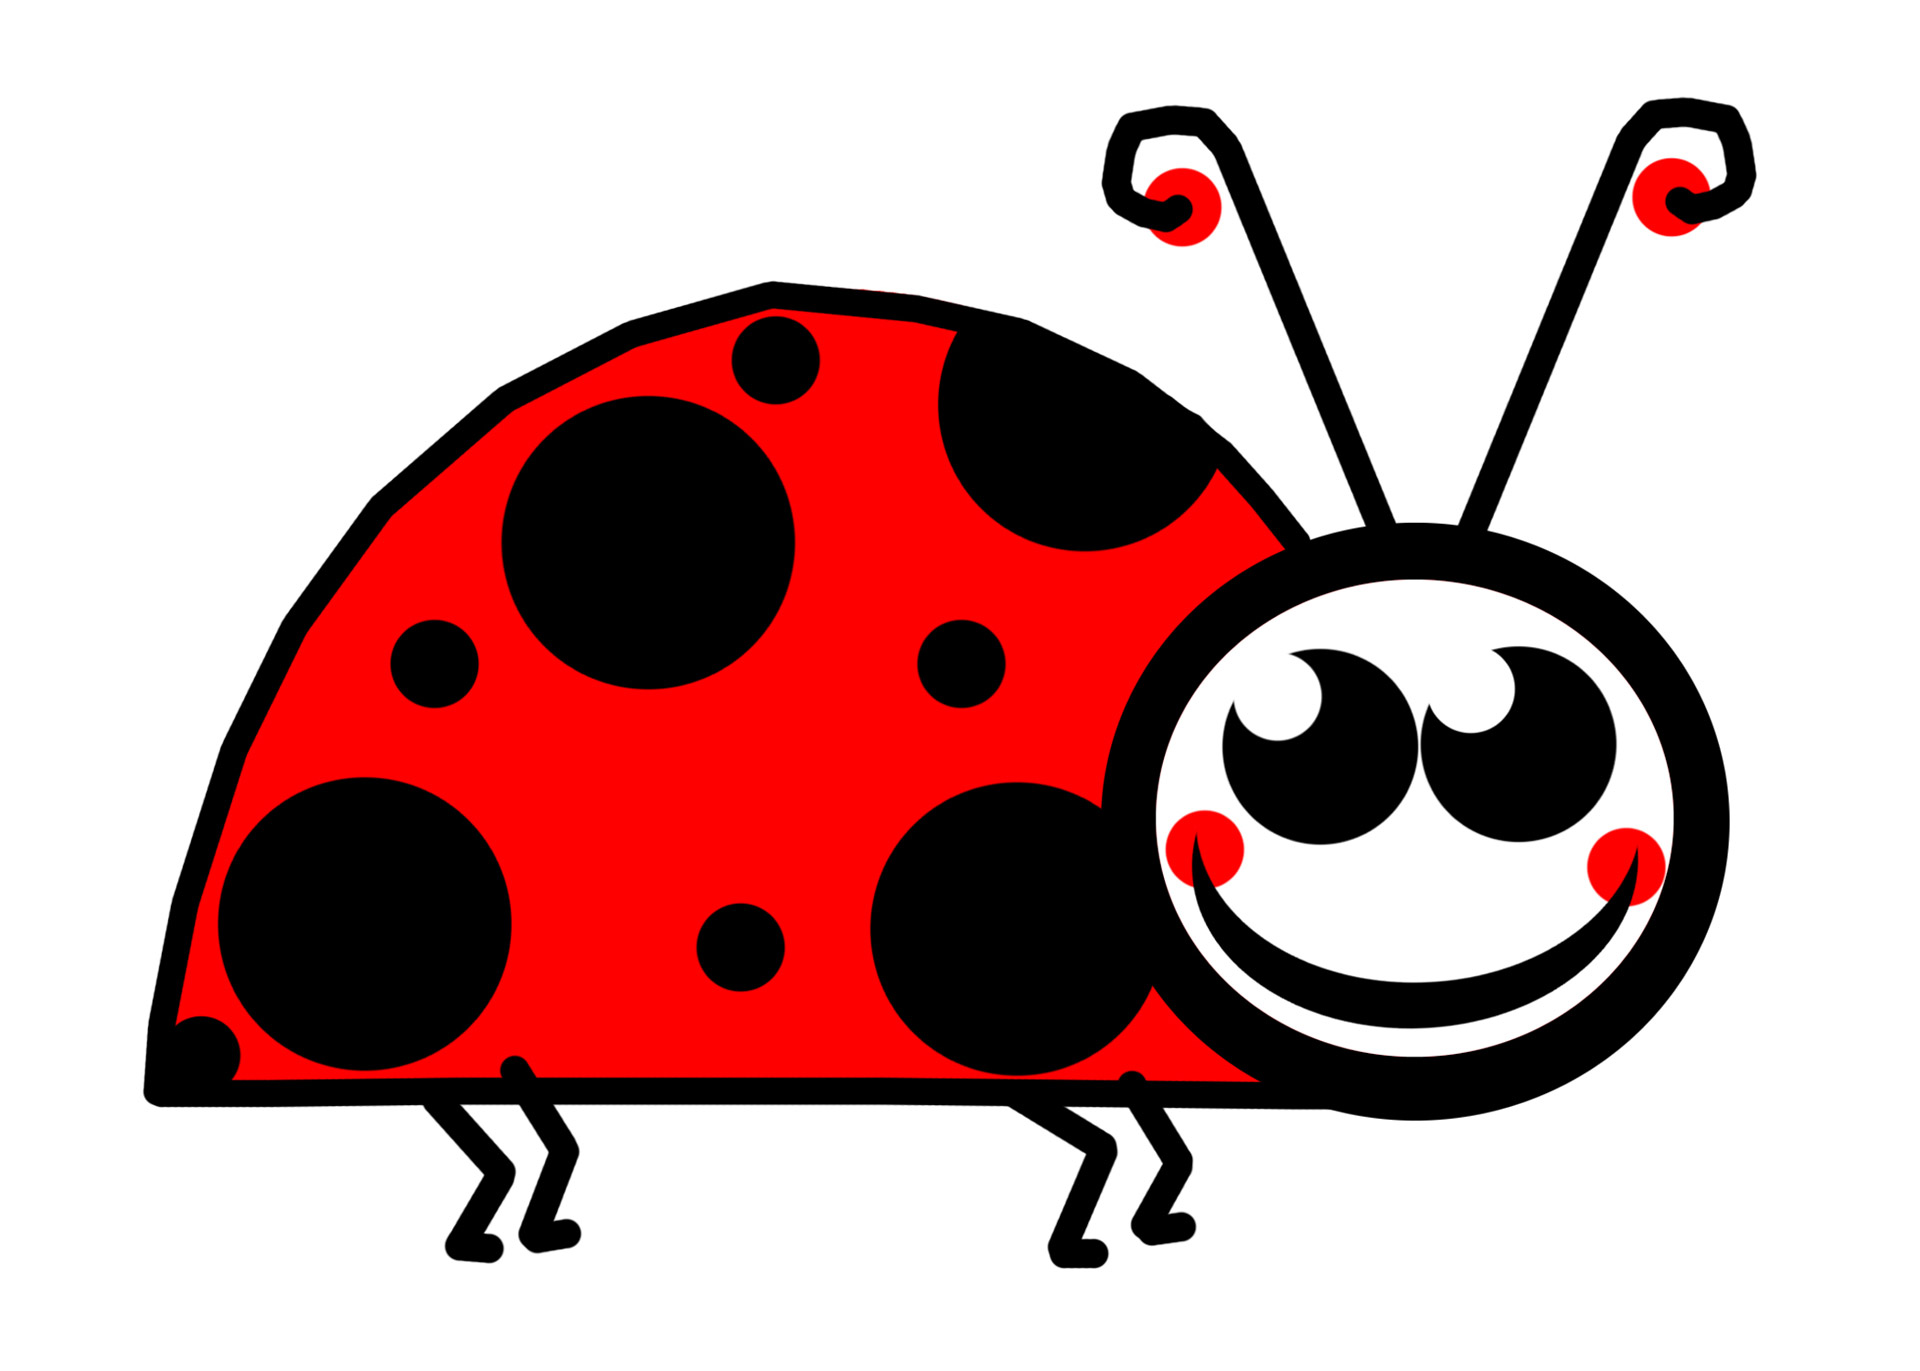 Bug clipart #5, Download drawings